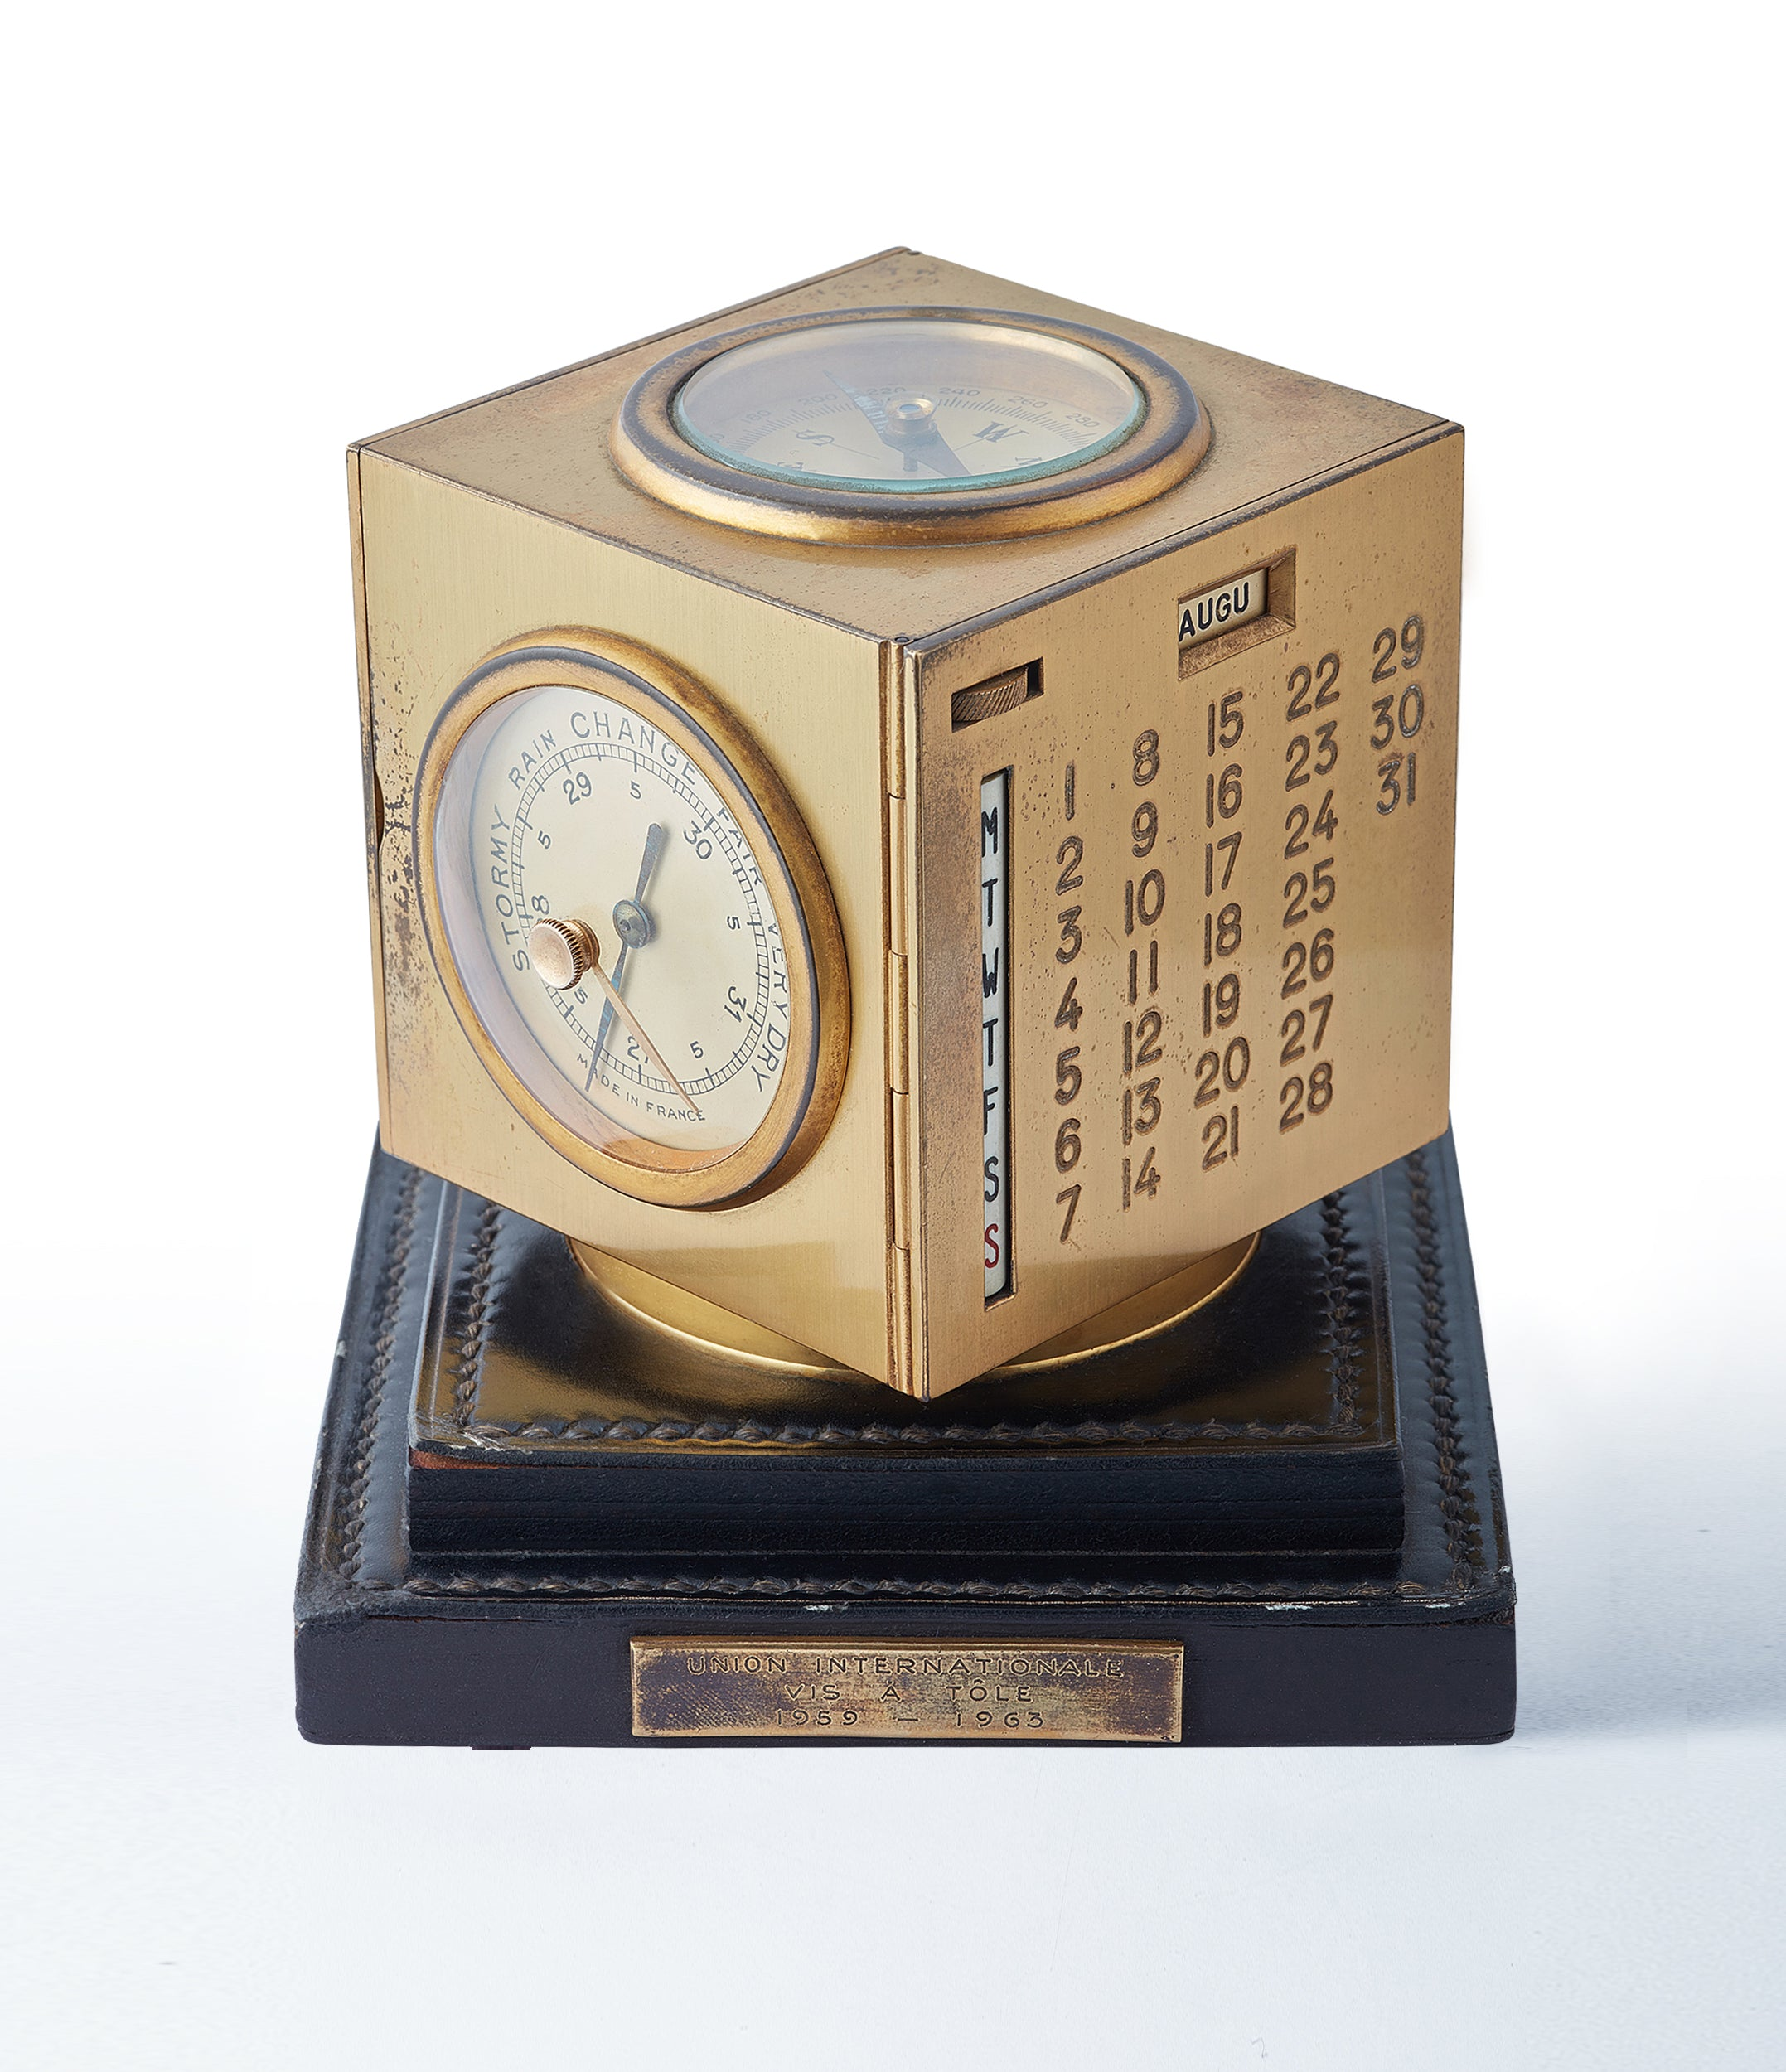 selling vintage Hermes Paris Compendium 8-day Art Deco brass calendar desk clock for sale online at A Collected Man for collectors of rare objects